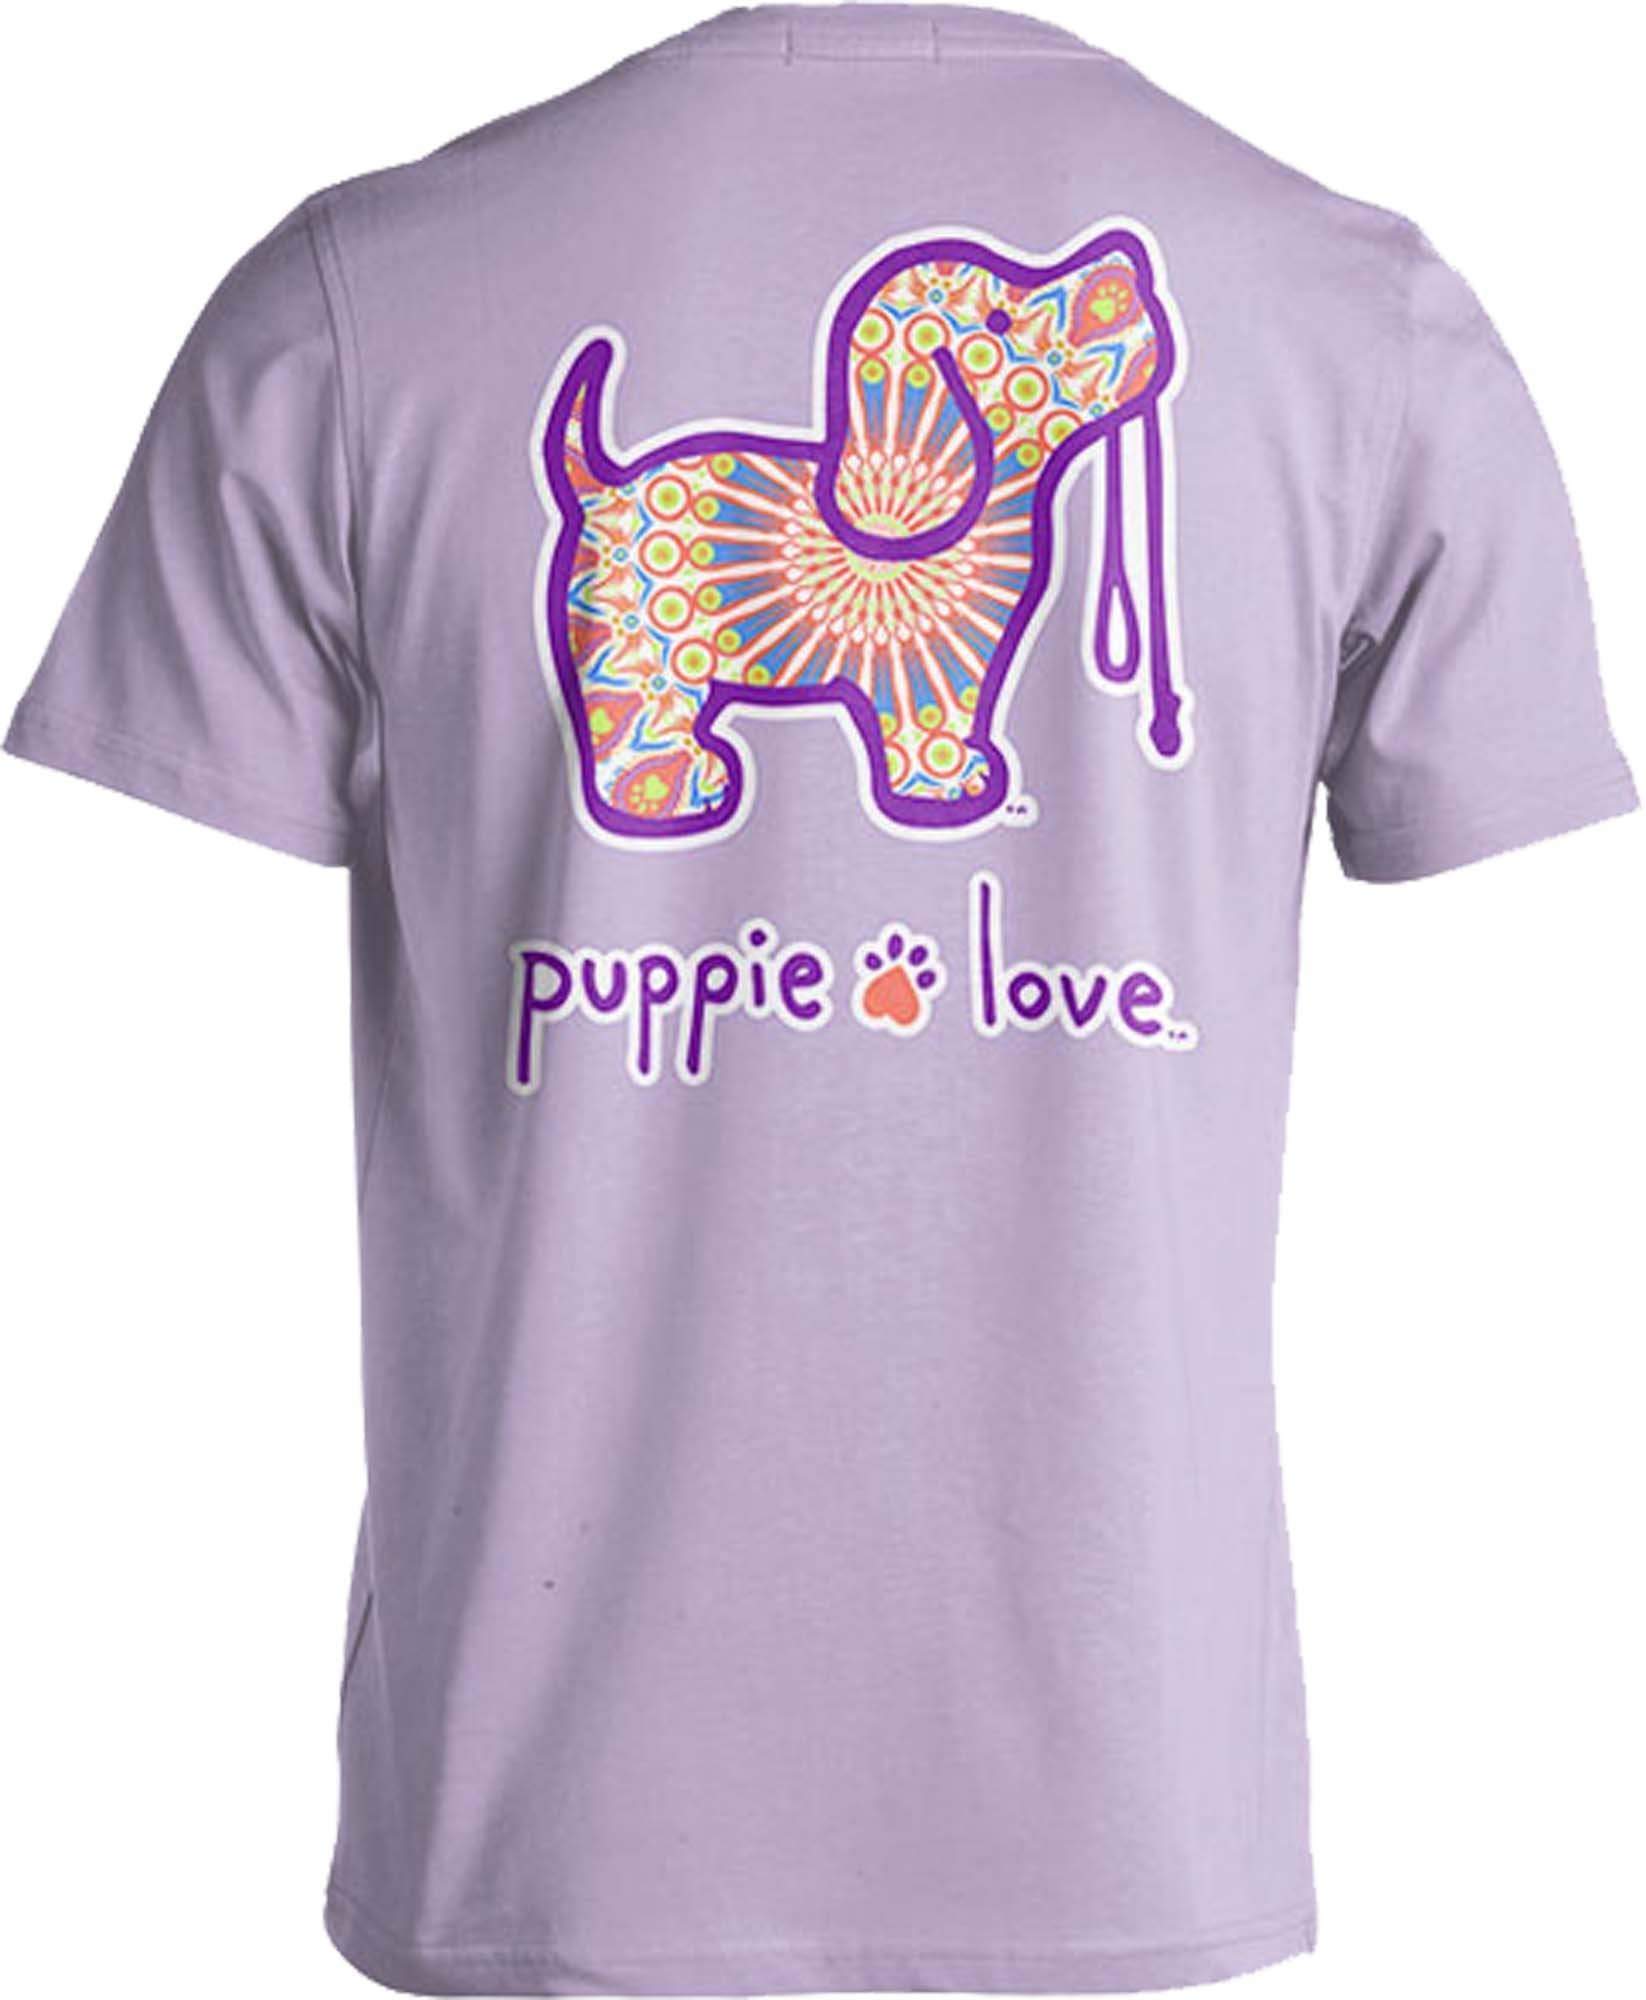 Rescue Dog Adult Unisex Short Sleeve Cotton T-Shirt, Boho Pup (Small, Orchid)